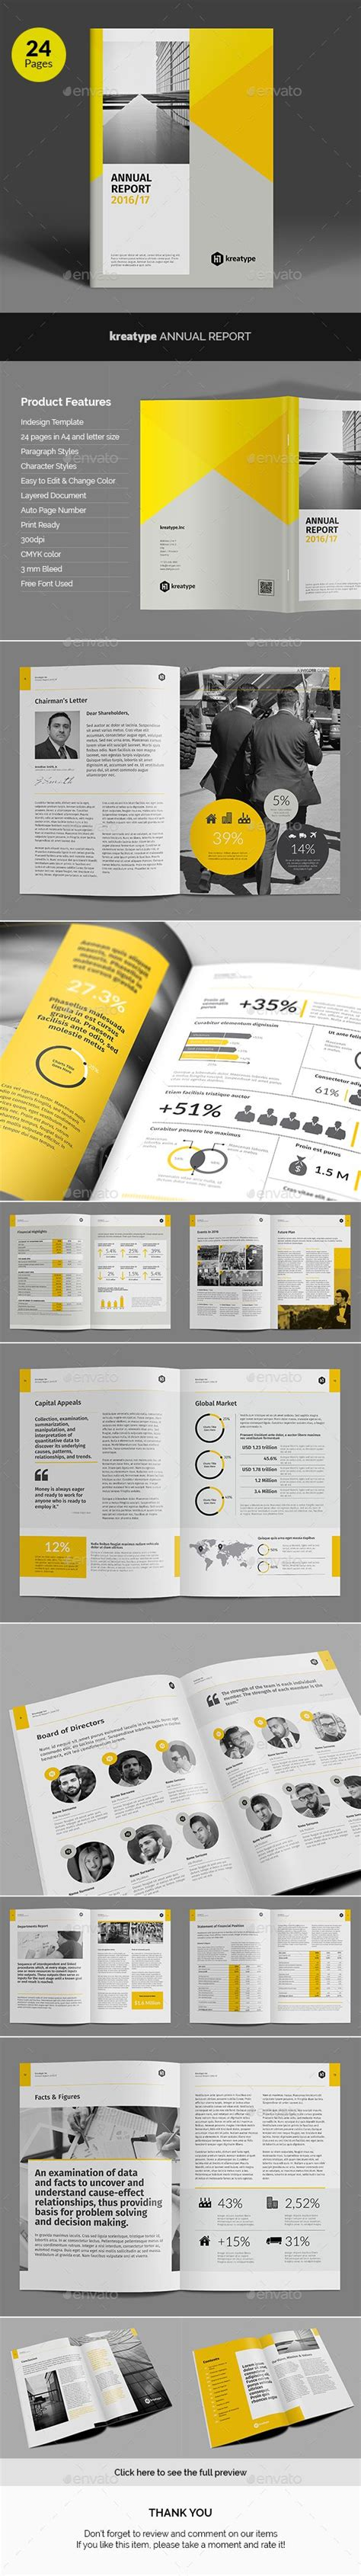 template indesign livre kreatype annual report mise en page mise et page